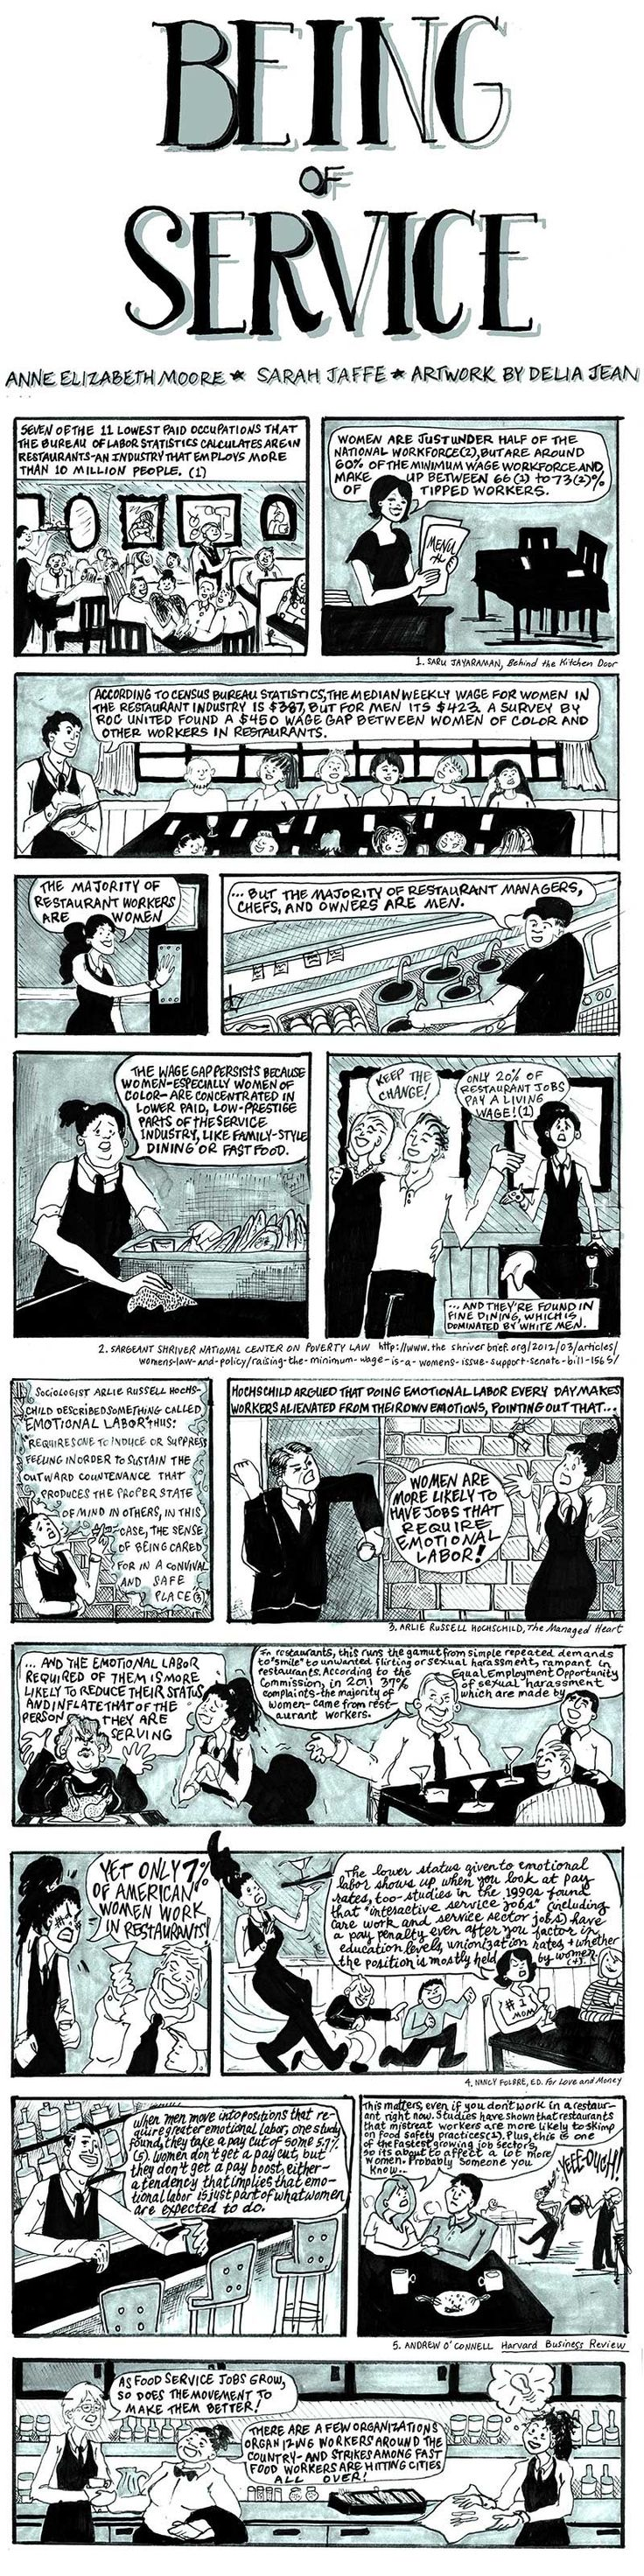 """A collaboration with labor reporter Sarah Jaffe, comics artist Delia Jean and Anne Elizabeth Moore, """"Being of Service"""" explains what's behind the nationwide food service worker protests."""